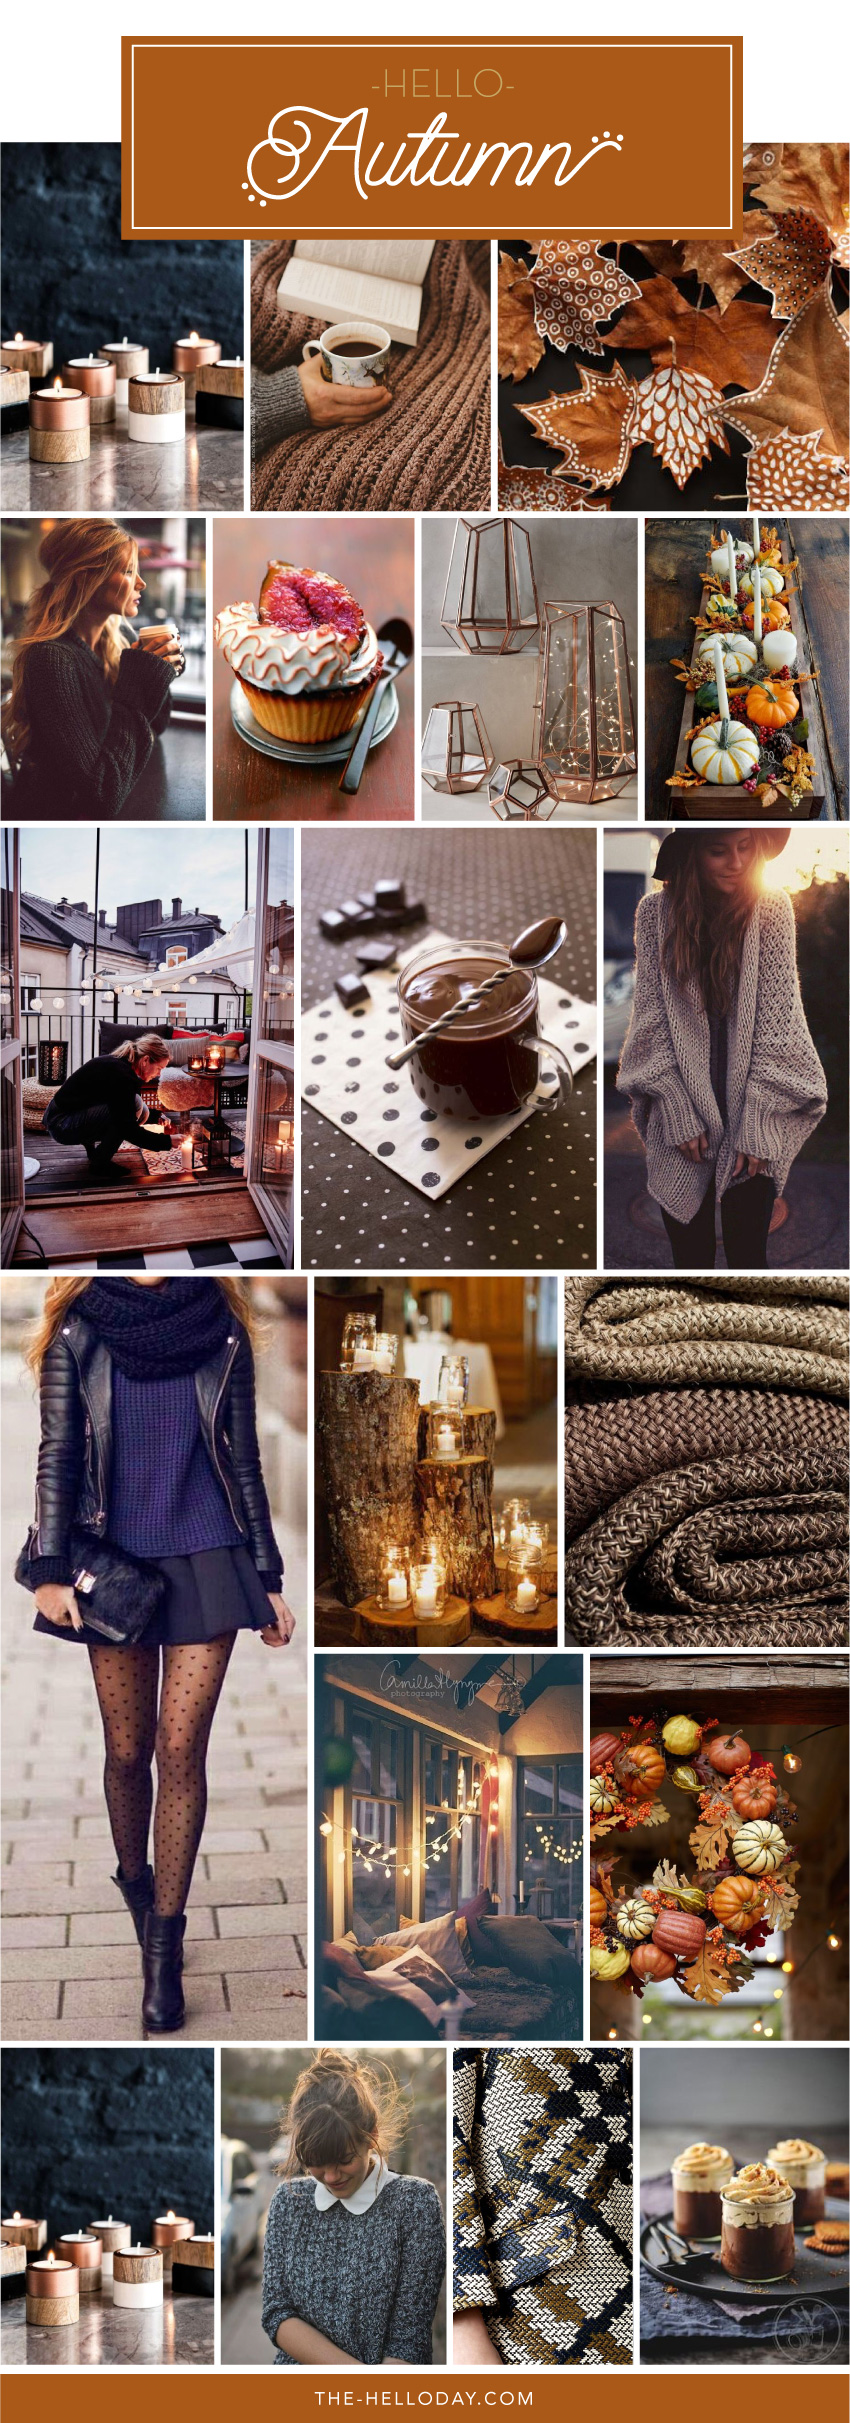 Pinterest - hello autumn